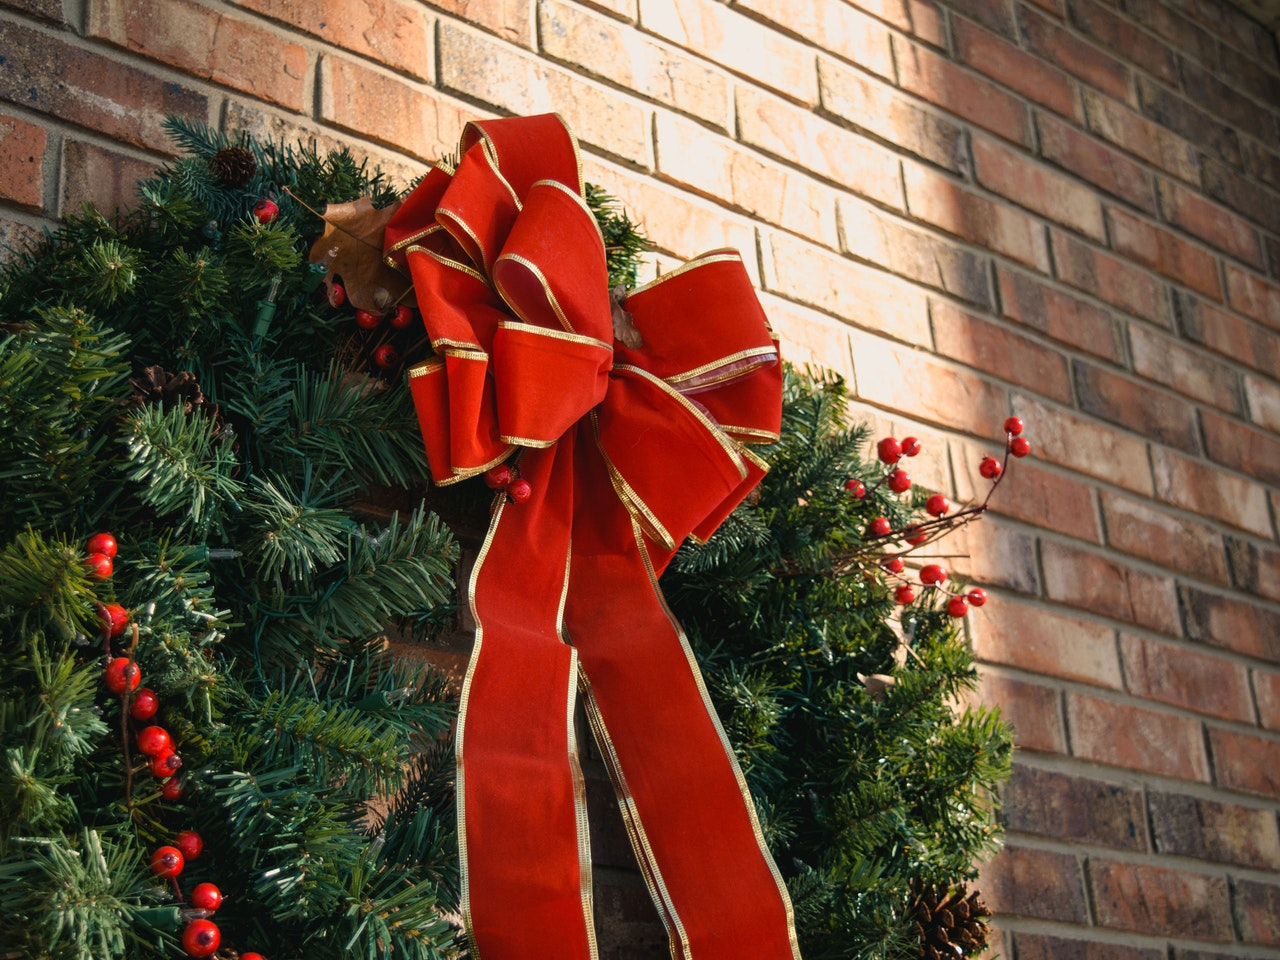 Urgent Need for Wreaths to Honor Veterans